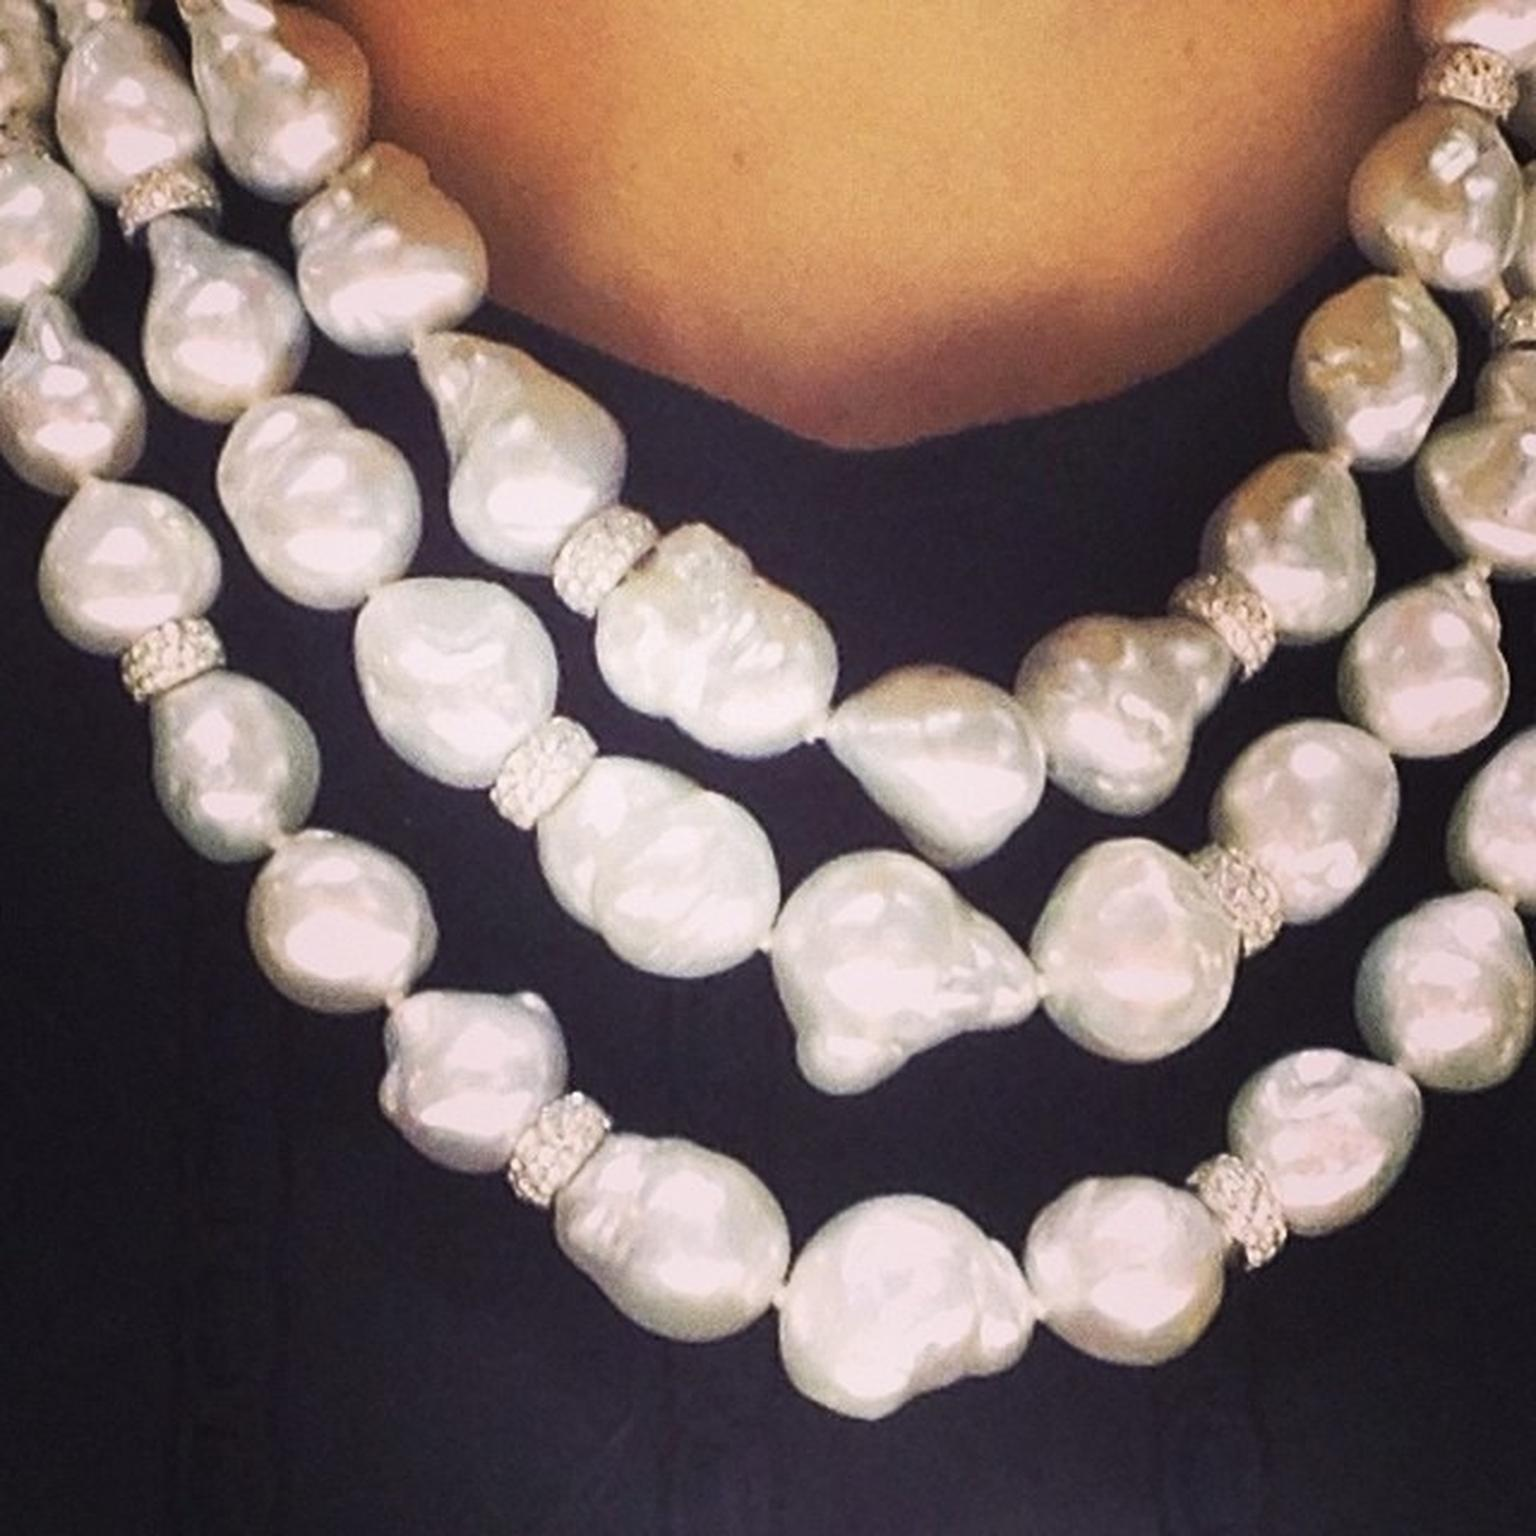 Yoko London baroque pearl necklace